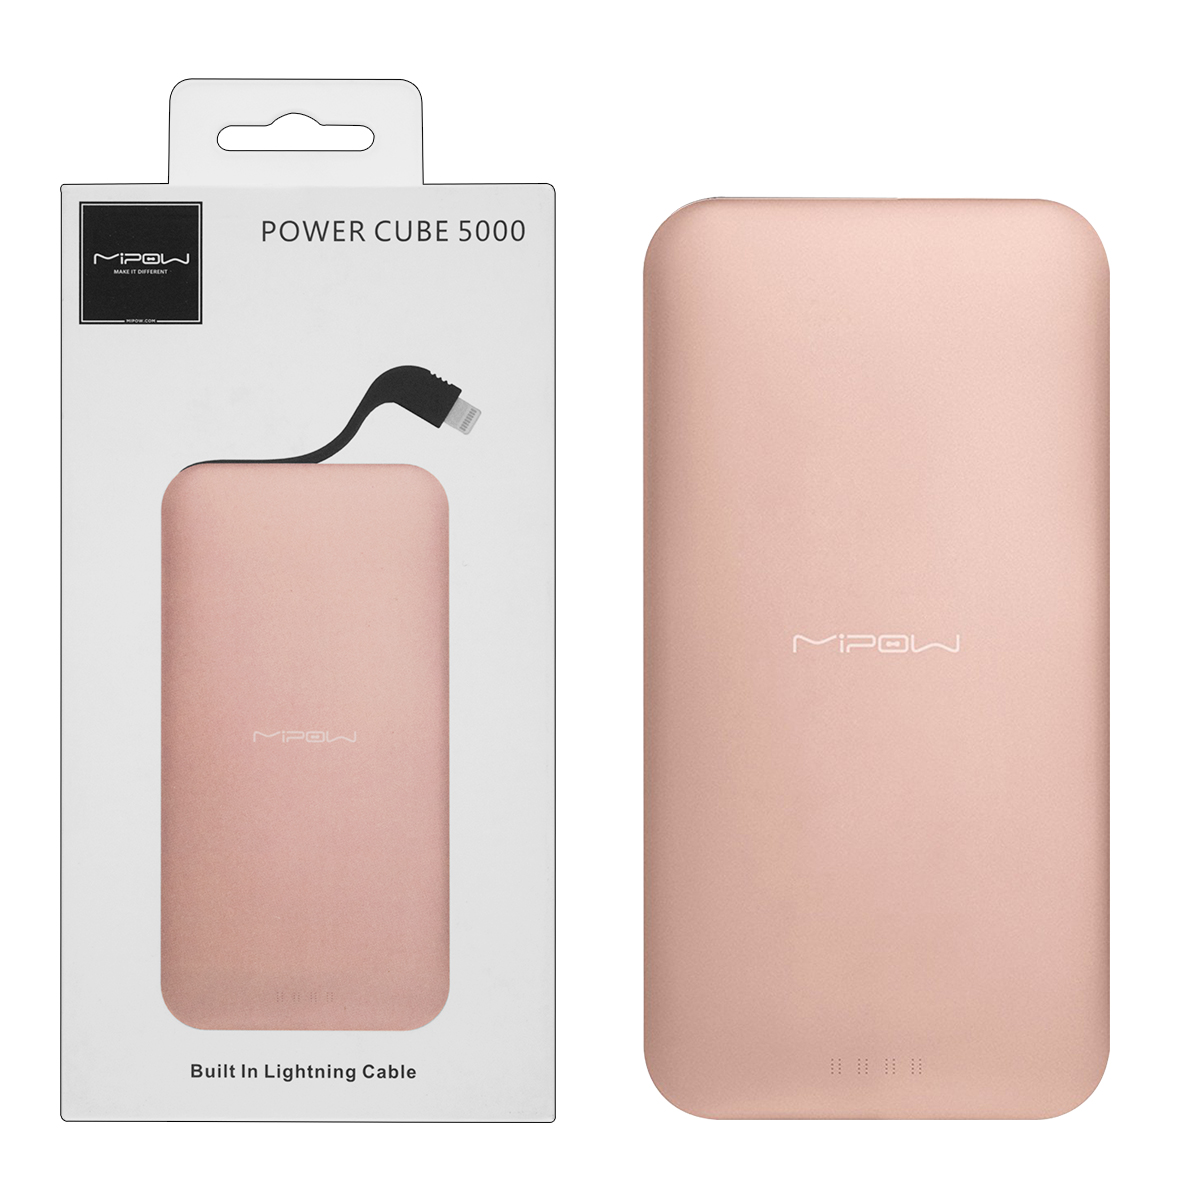 MiPow Power Cube 5000 Portable Charger with Lightning Connector – Rose Gold